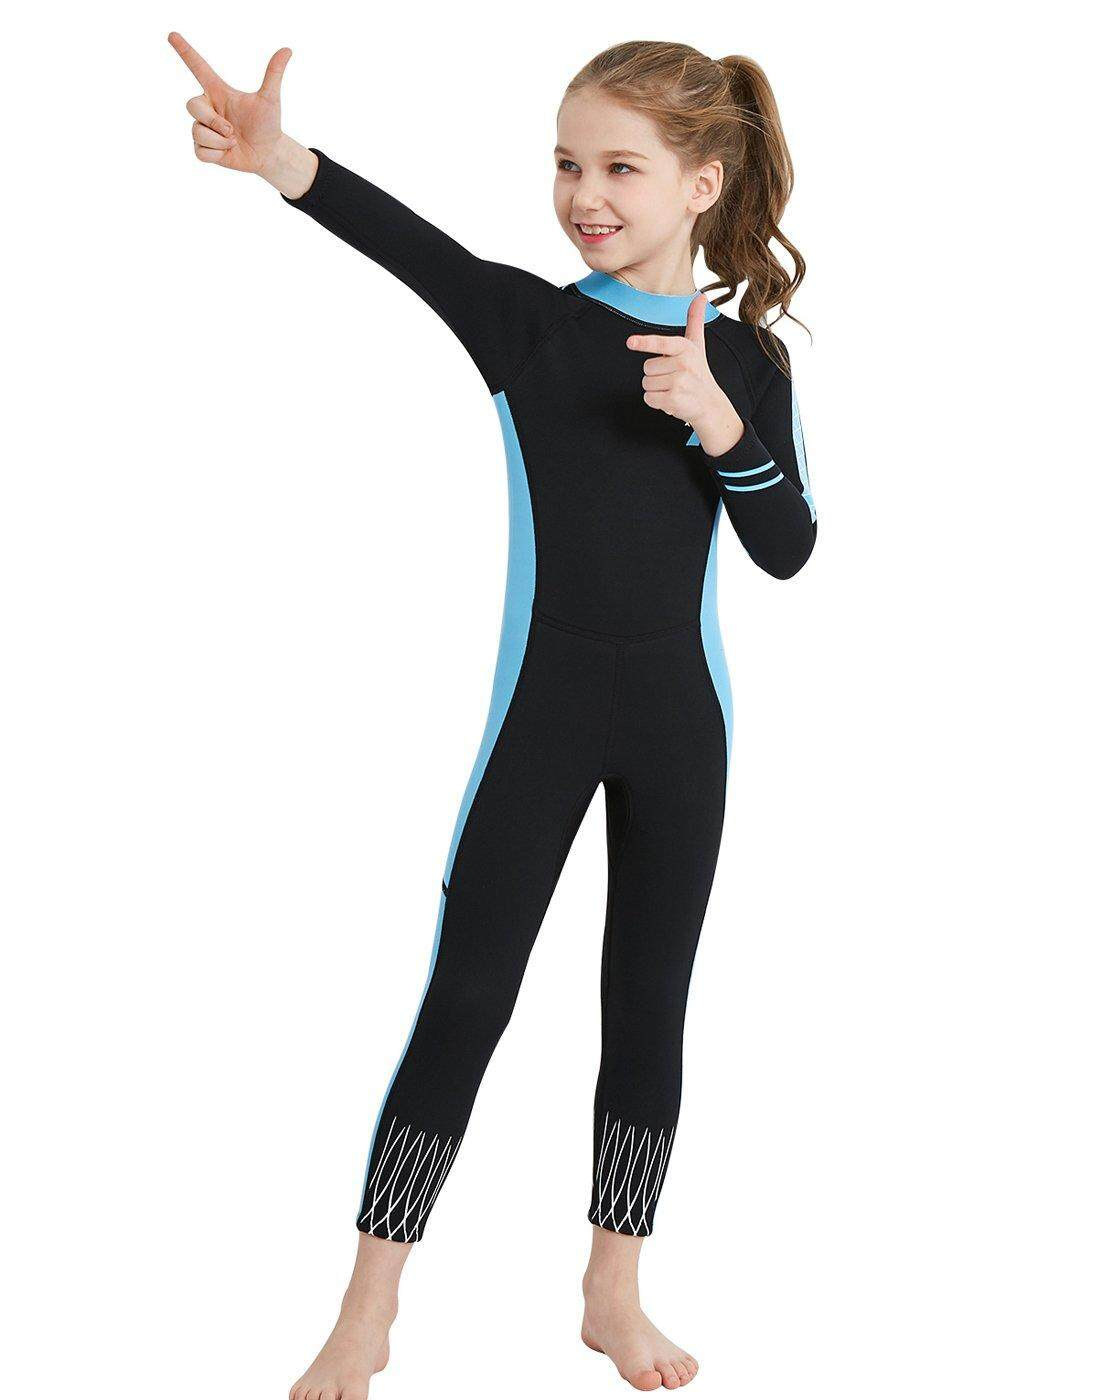 e4772c9a6f DIVE & SAIL Kids Girls 2.5mm Wetsuit Long Sleeve One Piece UV Protection  Thermal Swimsuit